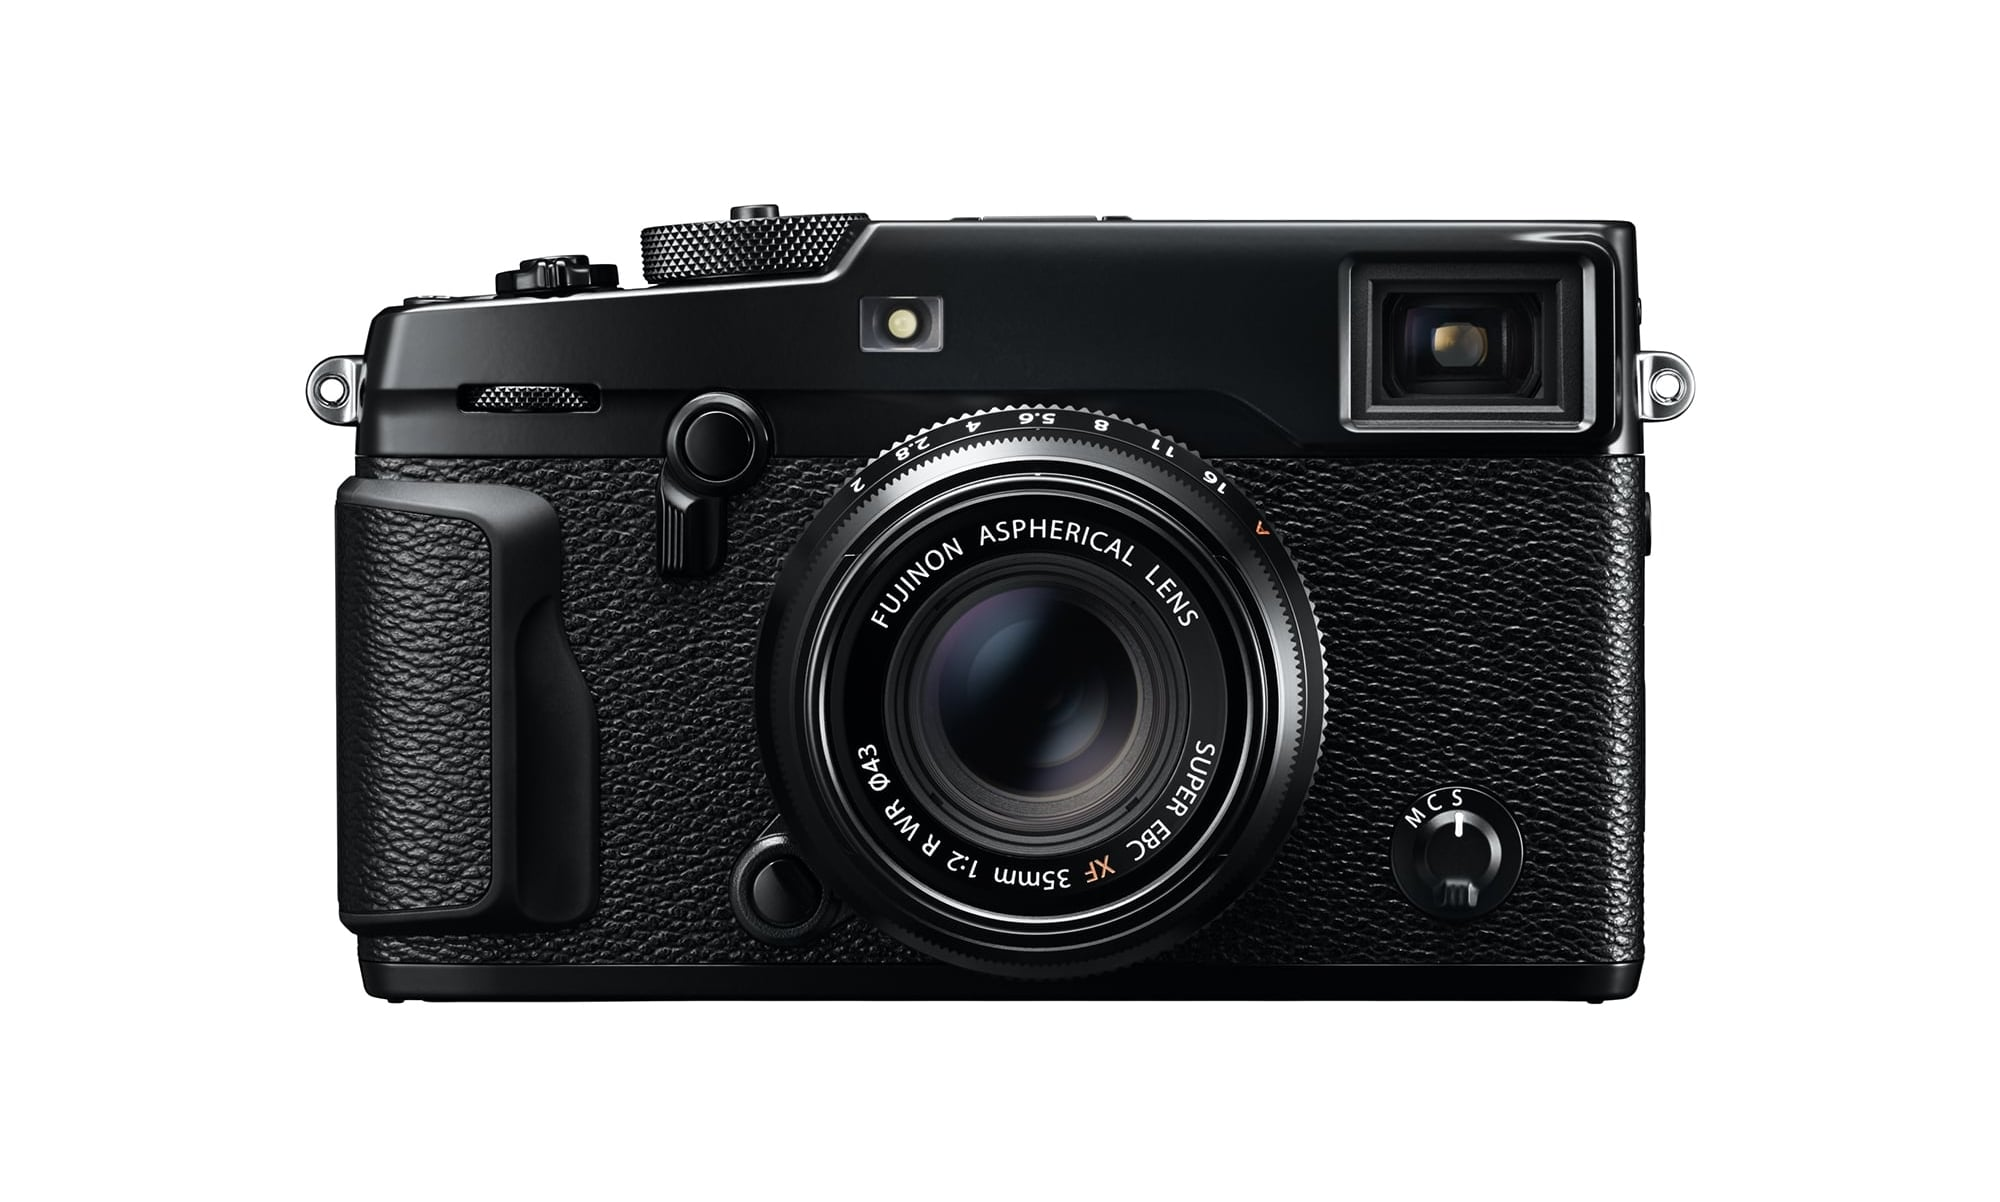 Seen from the front, not a lot has changed: the EVF/OVF lever now not only lets you switch from OVF to EVF, but also between the two OVF modes that we now know from the X100T. Another barely visible - but interesting - new feature is the addition of a front command dial. Image © Fujifilm Corporation.